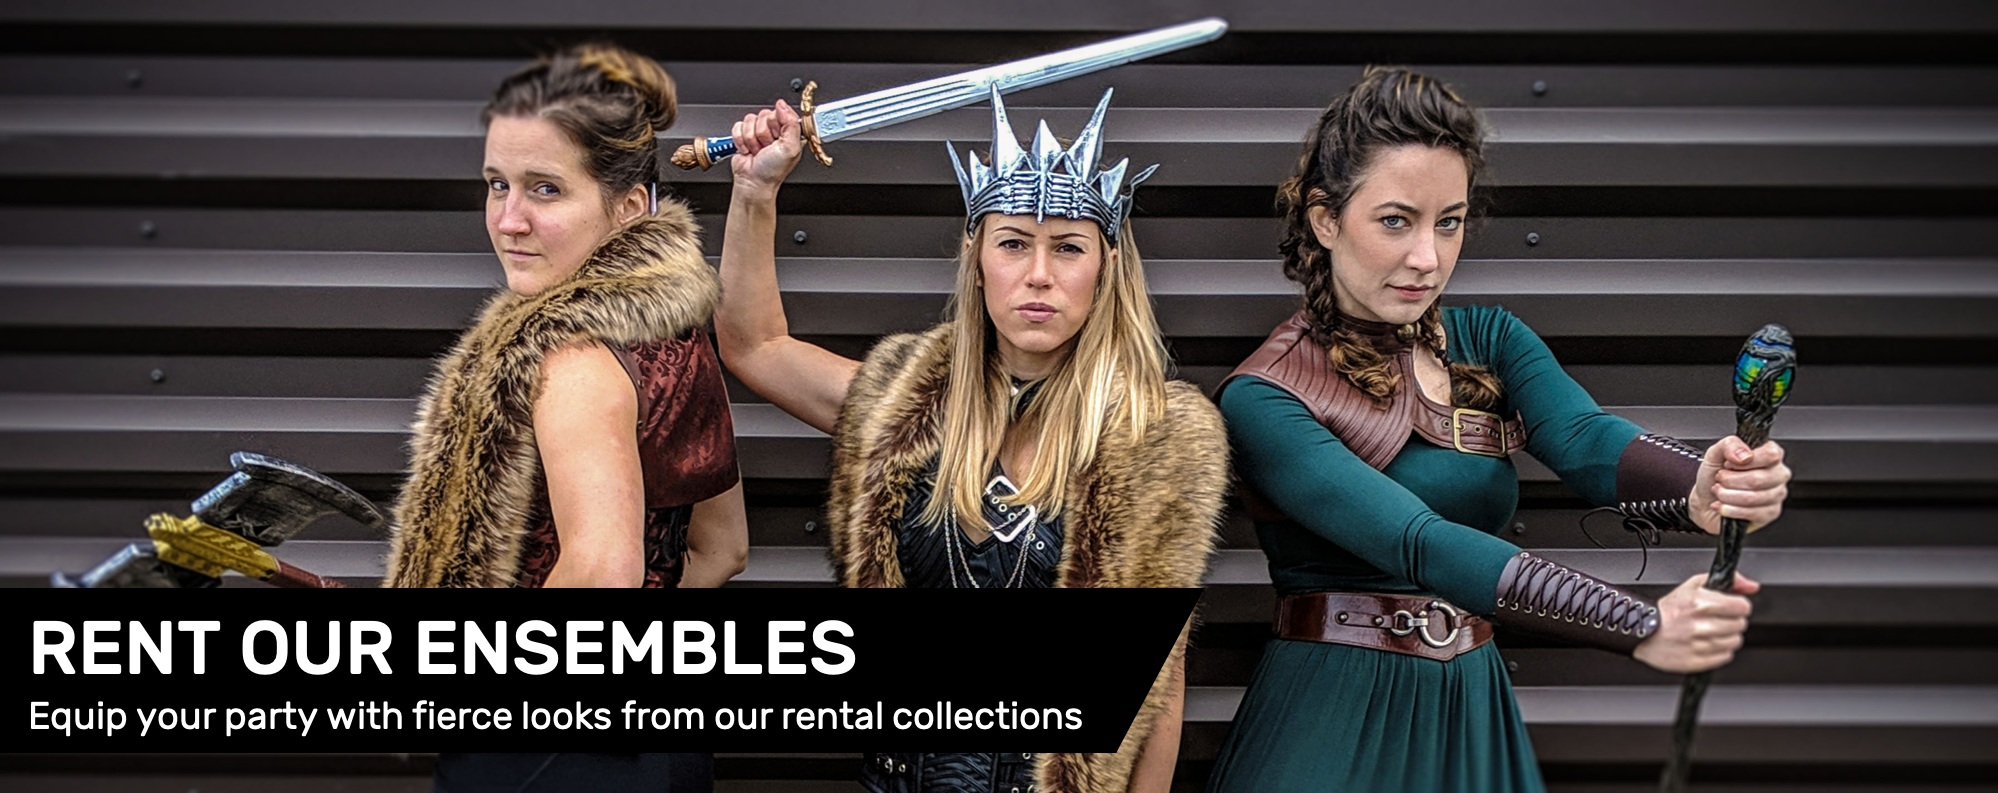 Rent our Ensembles Banner.png